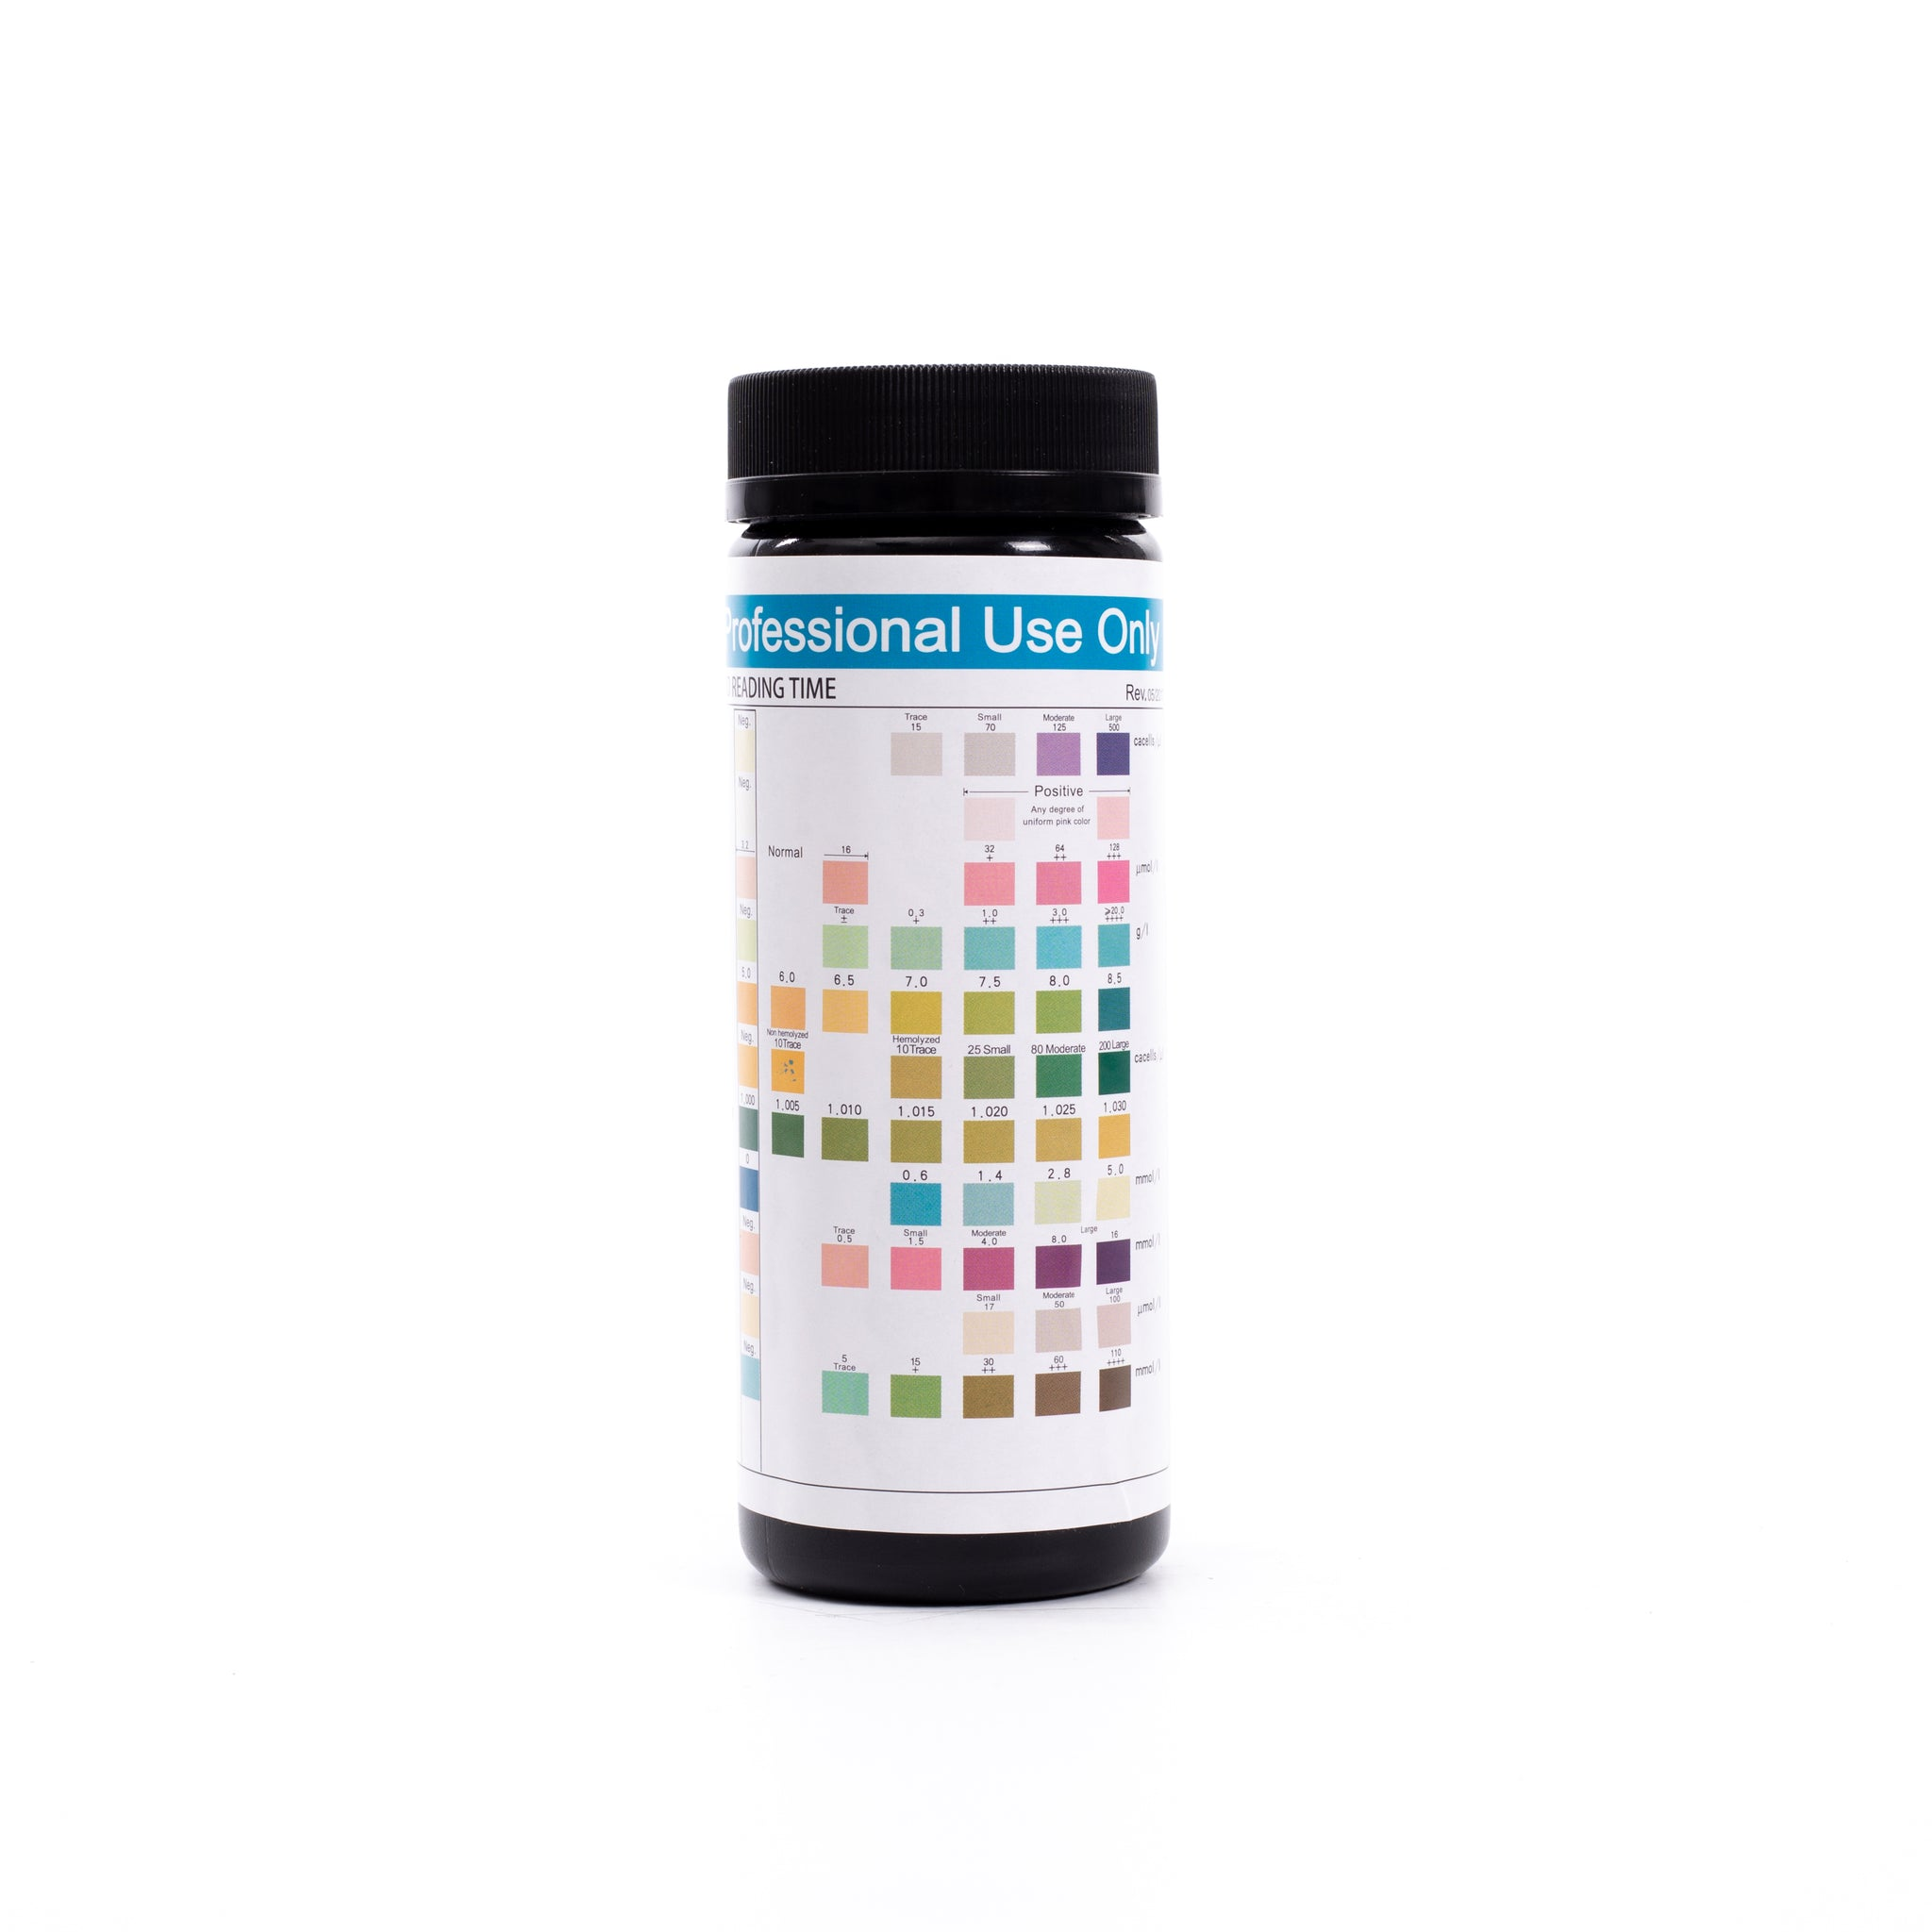 URS-11 FULL PANEL URINALYSIS -  100 STRIPS